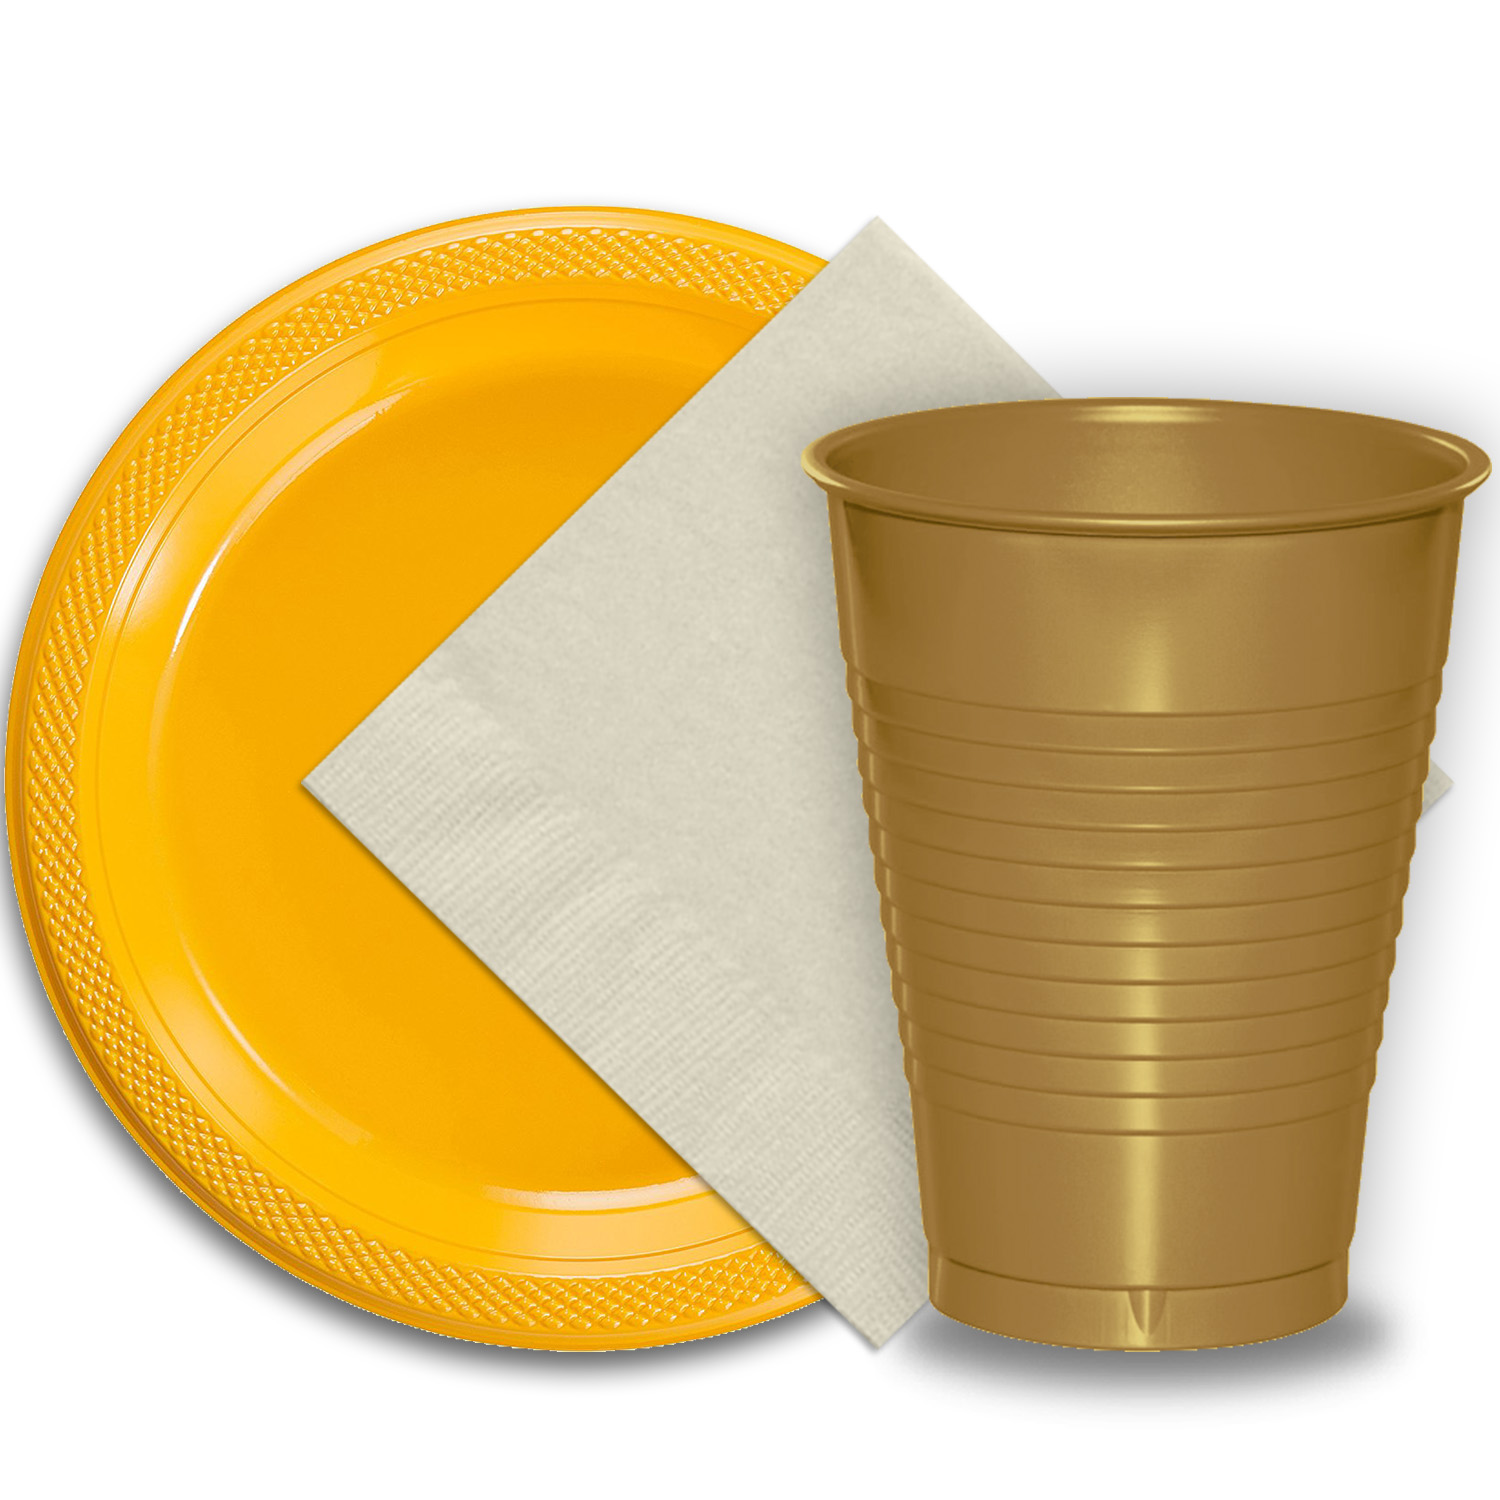 "50 Yellow Plastic Plates (9""), 50 Gold Plastic Cups (12 oz.), and 50 Ivory Paper Napkins, Dazzelling Colored Disposable Party Supplies Tableware Set for Fifty Guests."